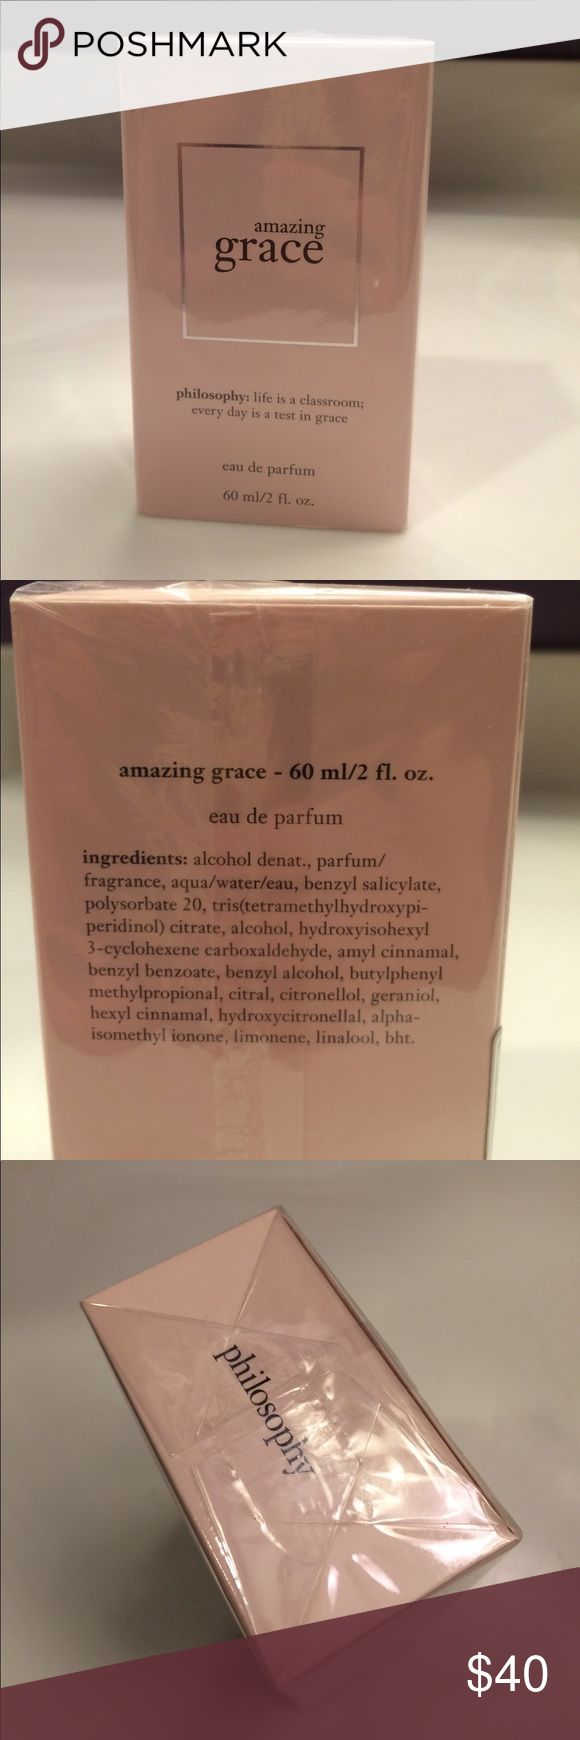 philosophy Amazing Grace Perfume New philosophy Amazing Grace eau de parfum. 60 ml/2 fl oz. Brand new in box & plastic wrapping in tact. This is Philosophy's bestselling scent. Notes include: bergamot, muguet blossoms & musk. The style is feminine, beautiful & clean. Sephora Makeup